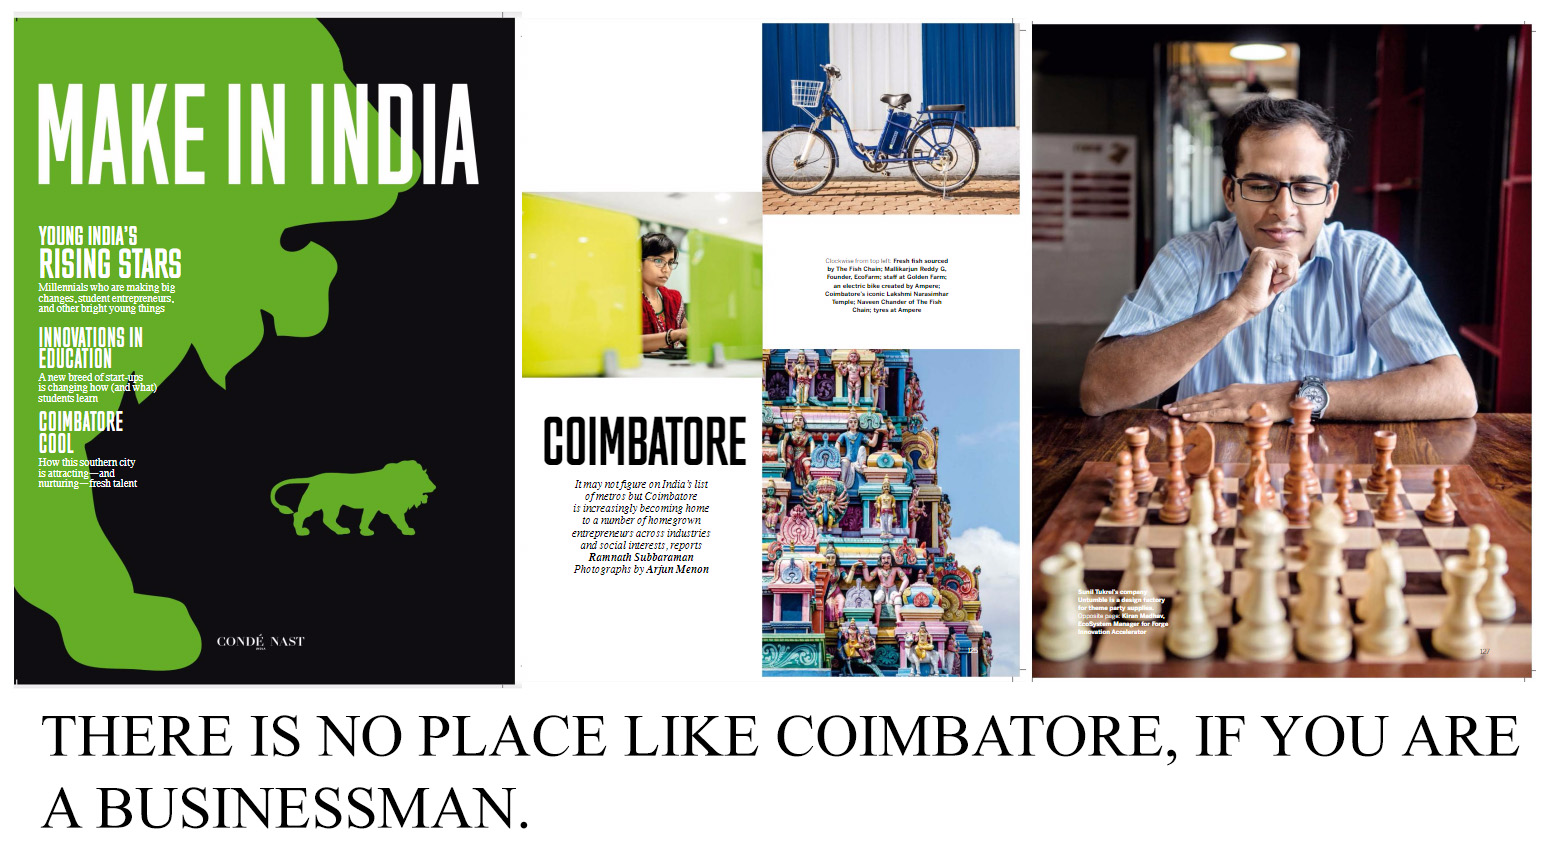 Make In India - Coimbatore Startups featured